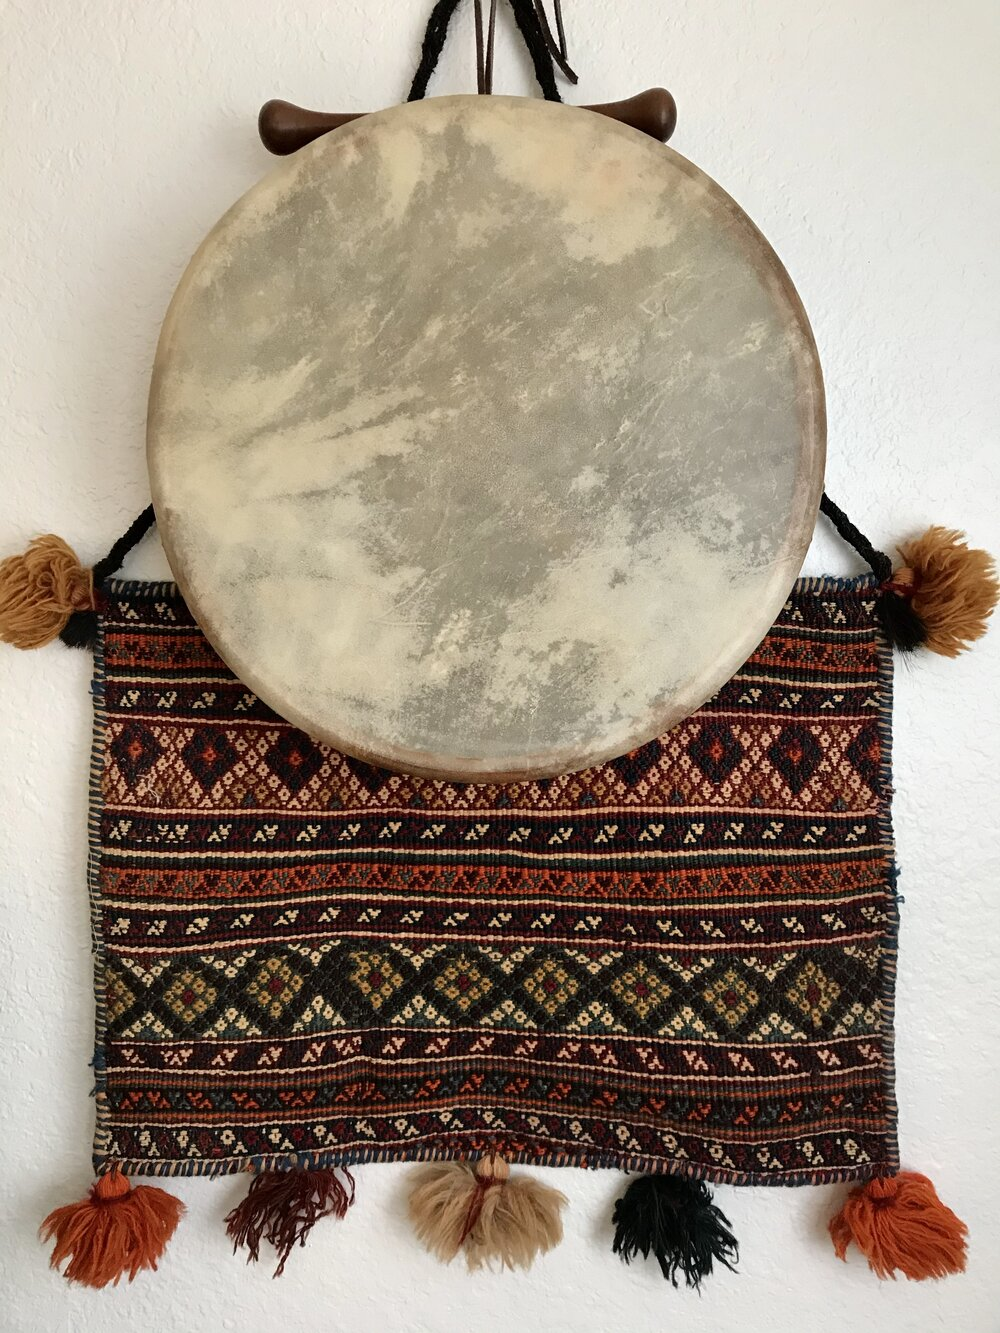 my drum and a traditional Armenian salt sack, both gifted to me by sister priestesses